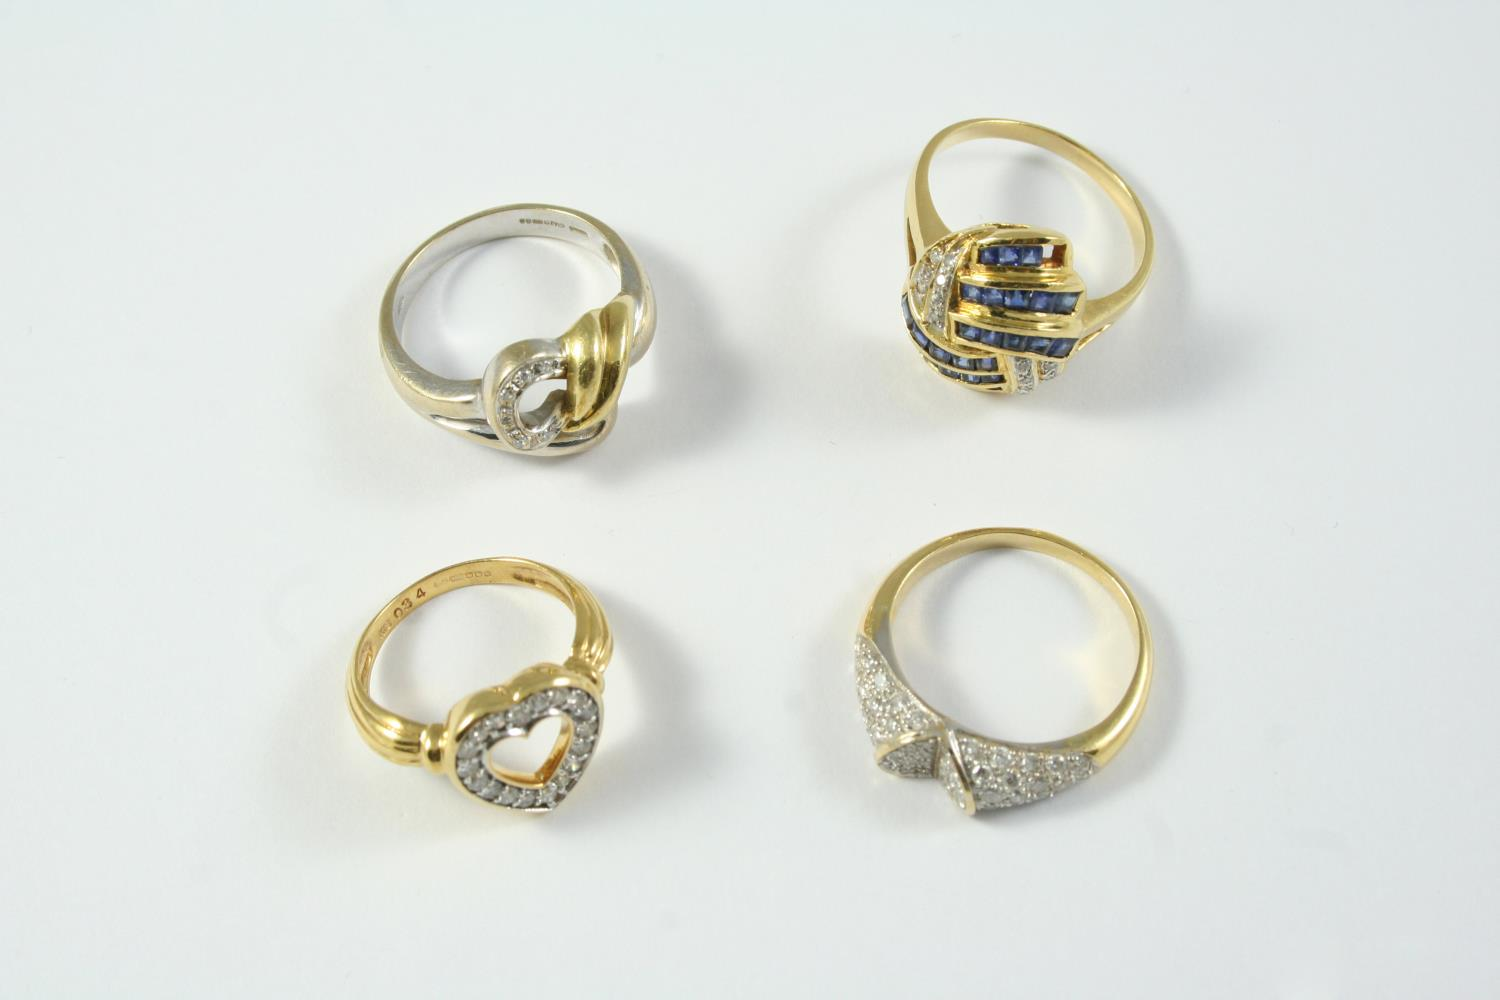 AN 18CT TWO COLOUR GOLD AND DIAMOND RING set with circular-cut diamonds, size P 1/2, together with a